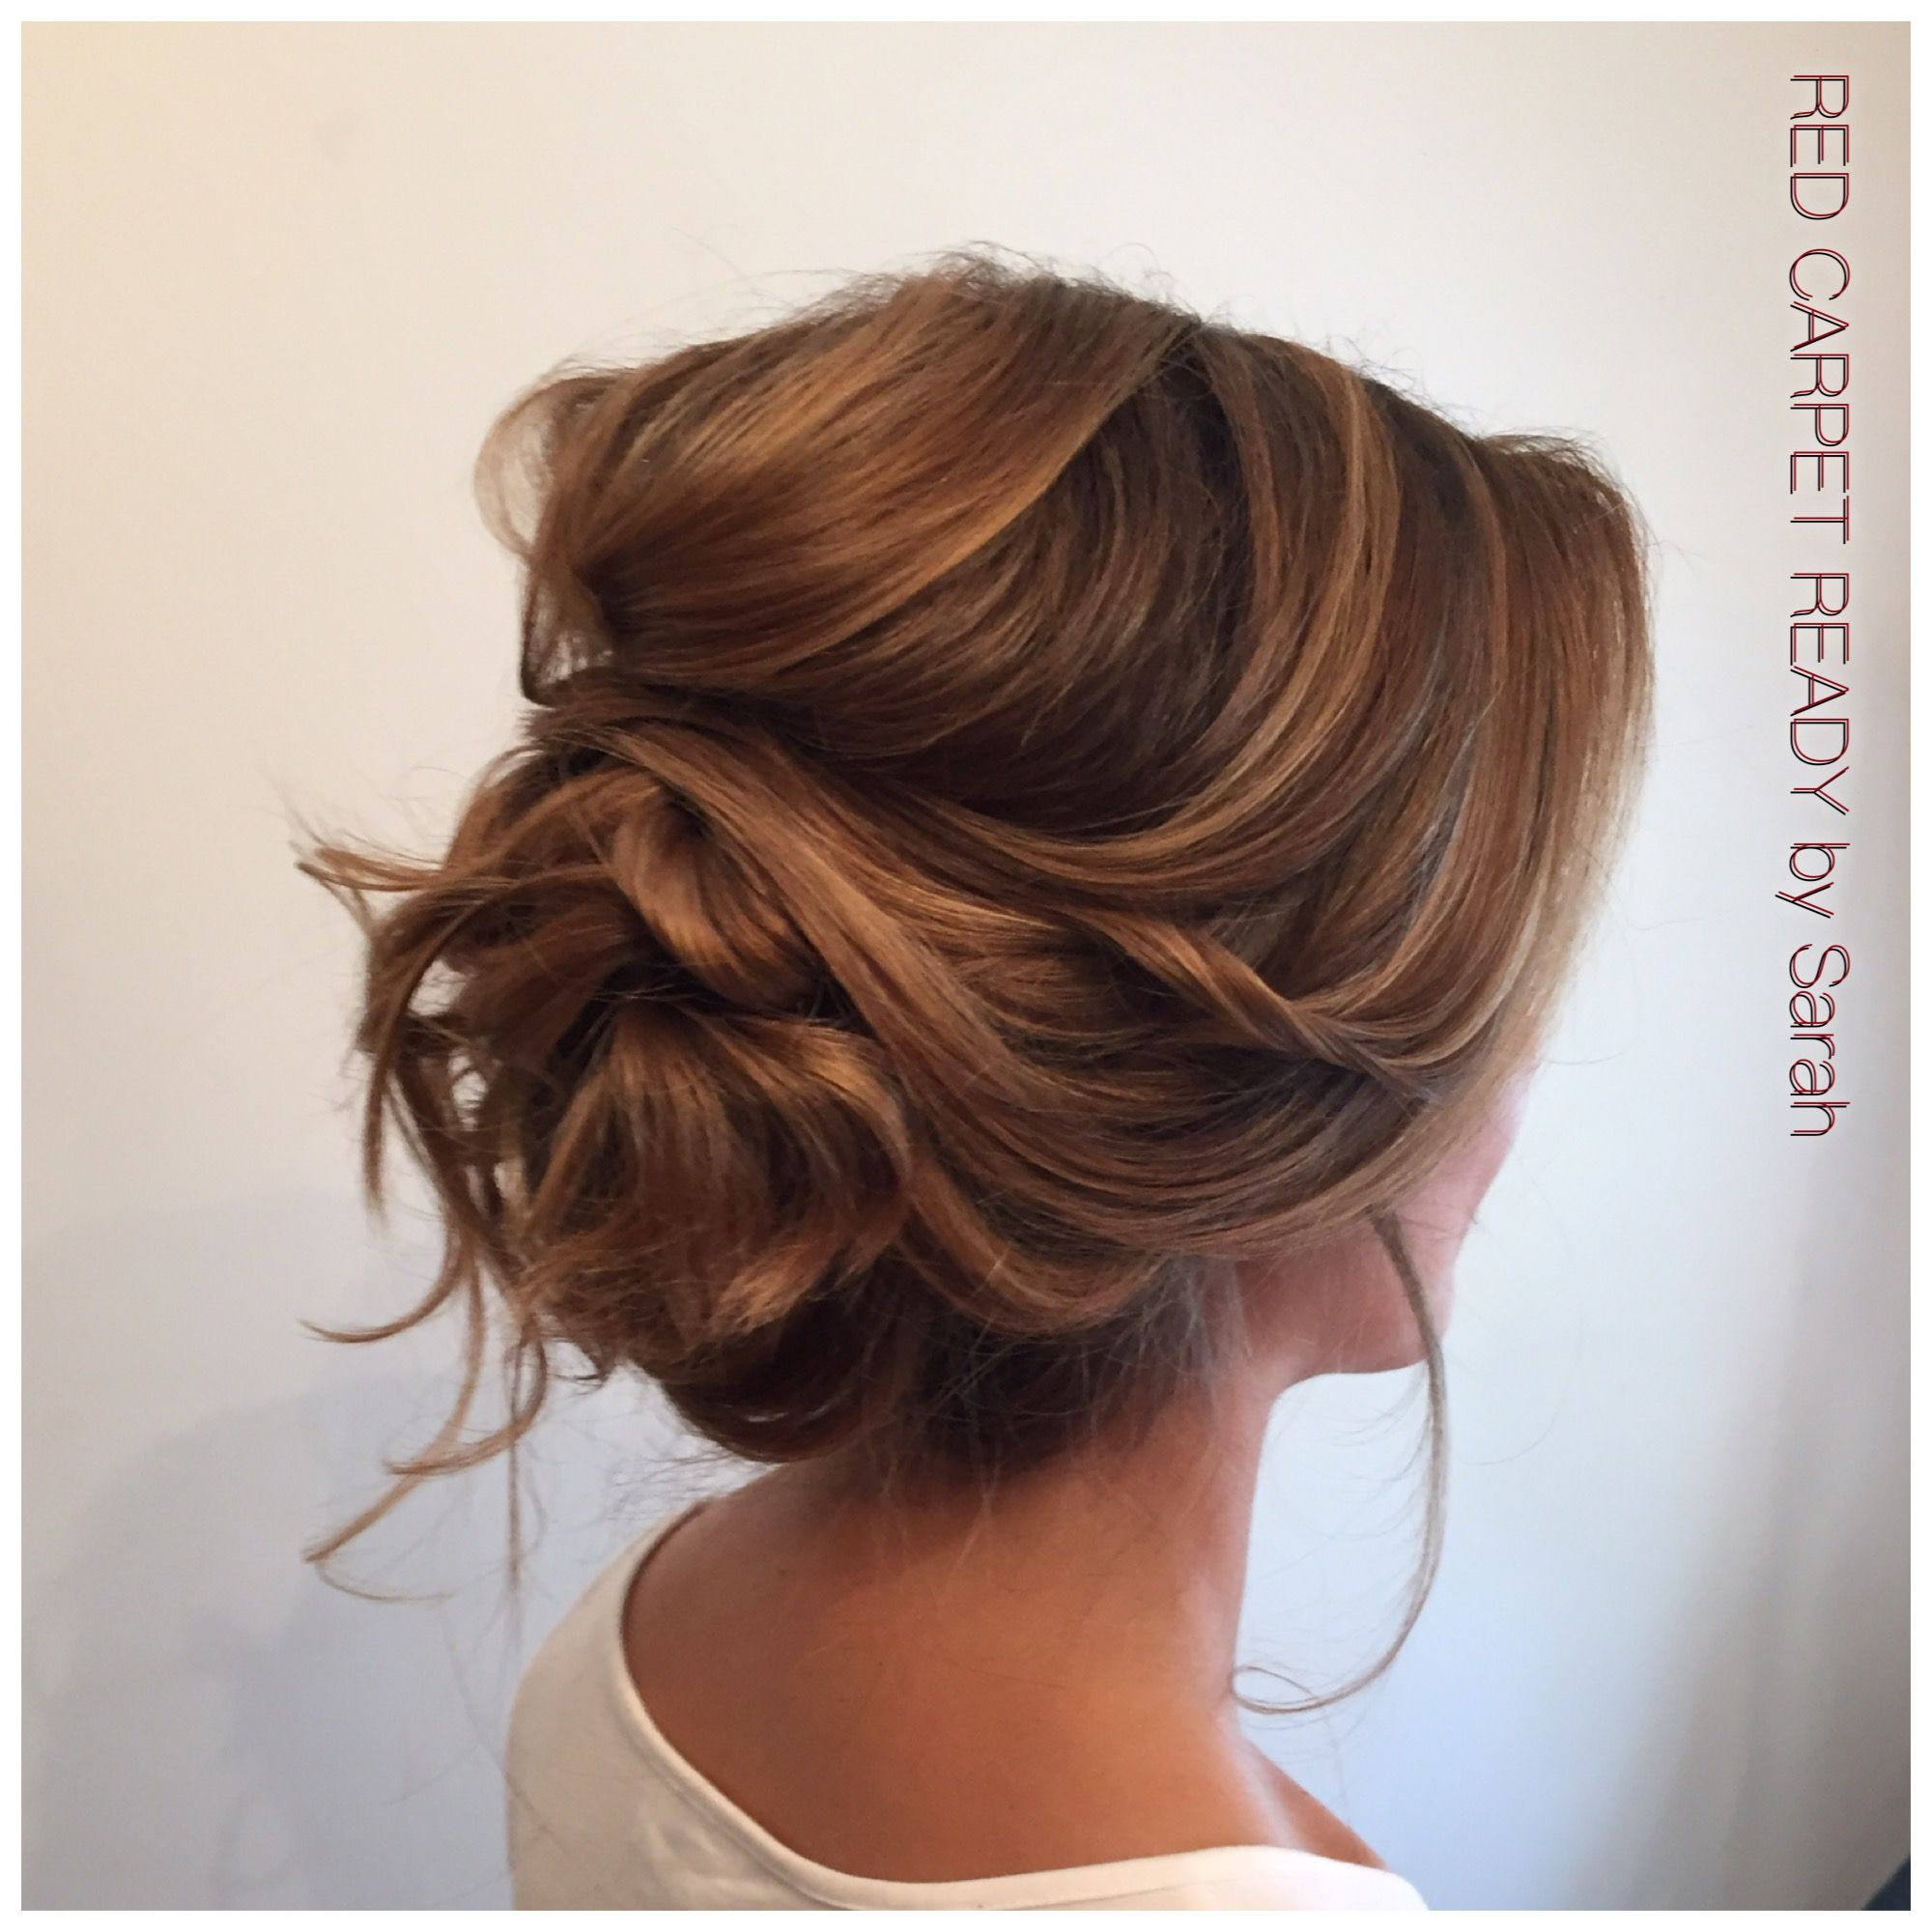 Cabello con volumen | peinados fiesta | Pinterest | Voluminous updo ...